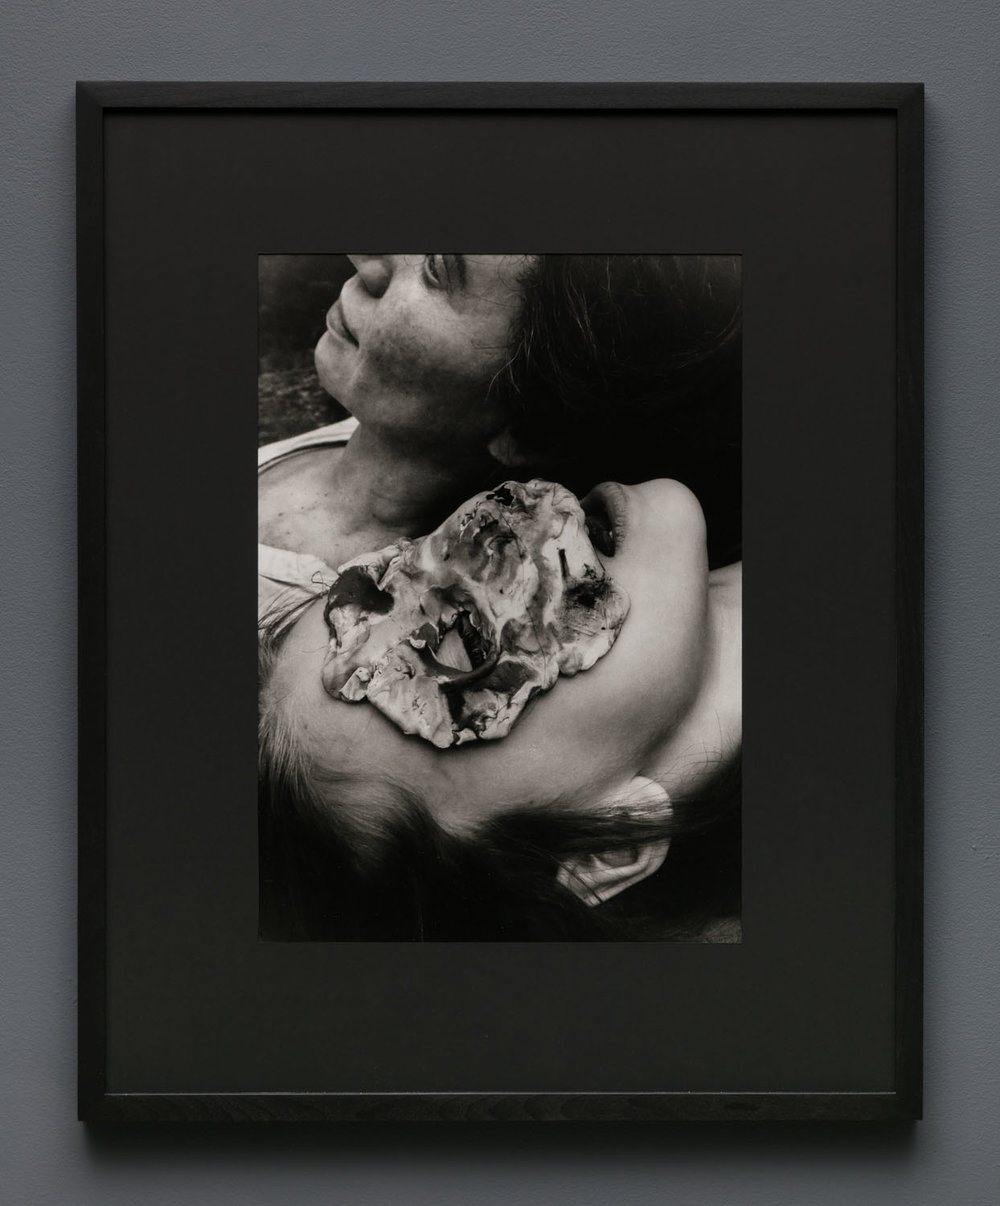 Aneta Grzeszykowska   Mama #22 , 2018  Silver gelatin print  Hand printed by the Artist  19.625 x 14.145 inches  29.5 x 24 inches (framed)  Edition of 5 + I A.P.